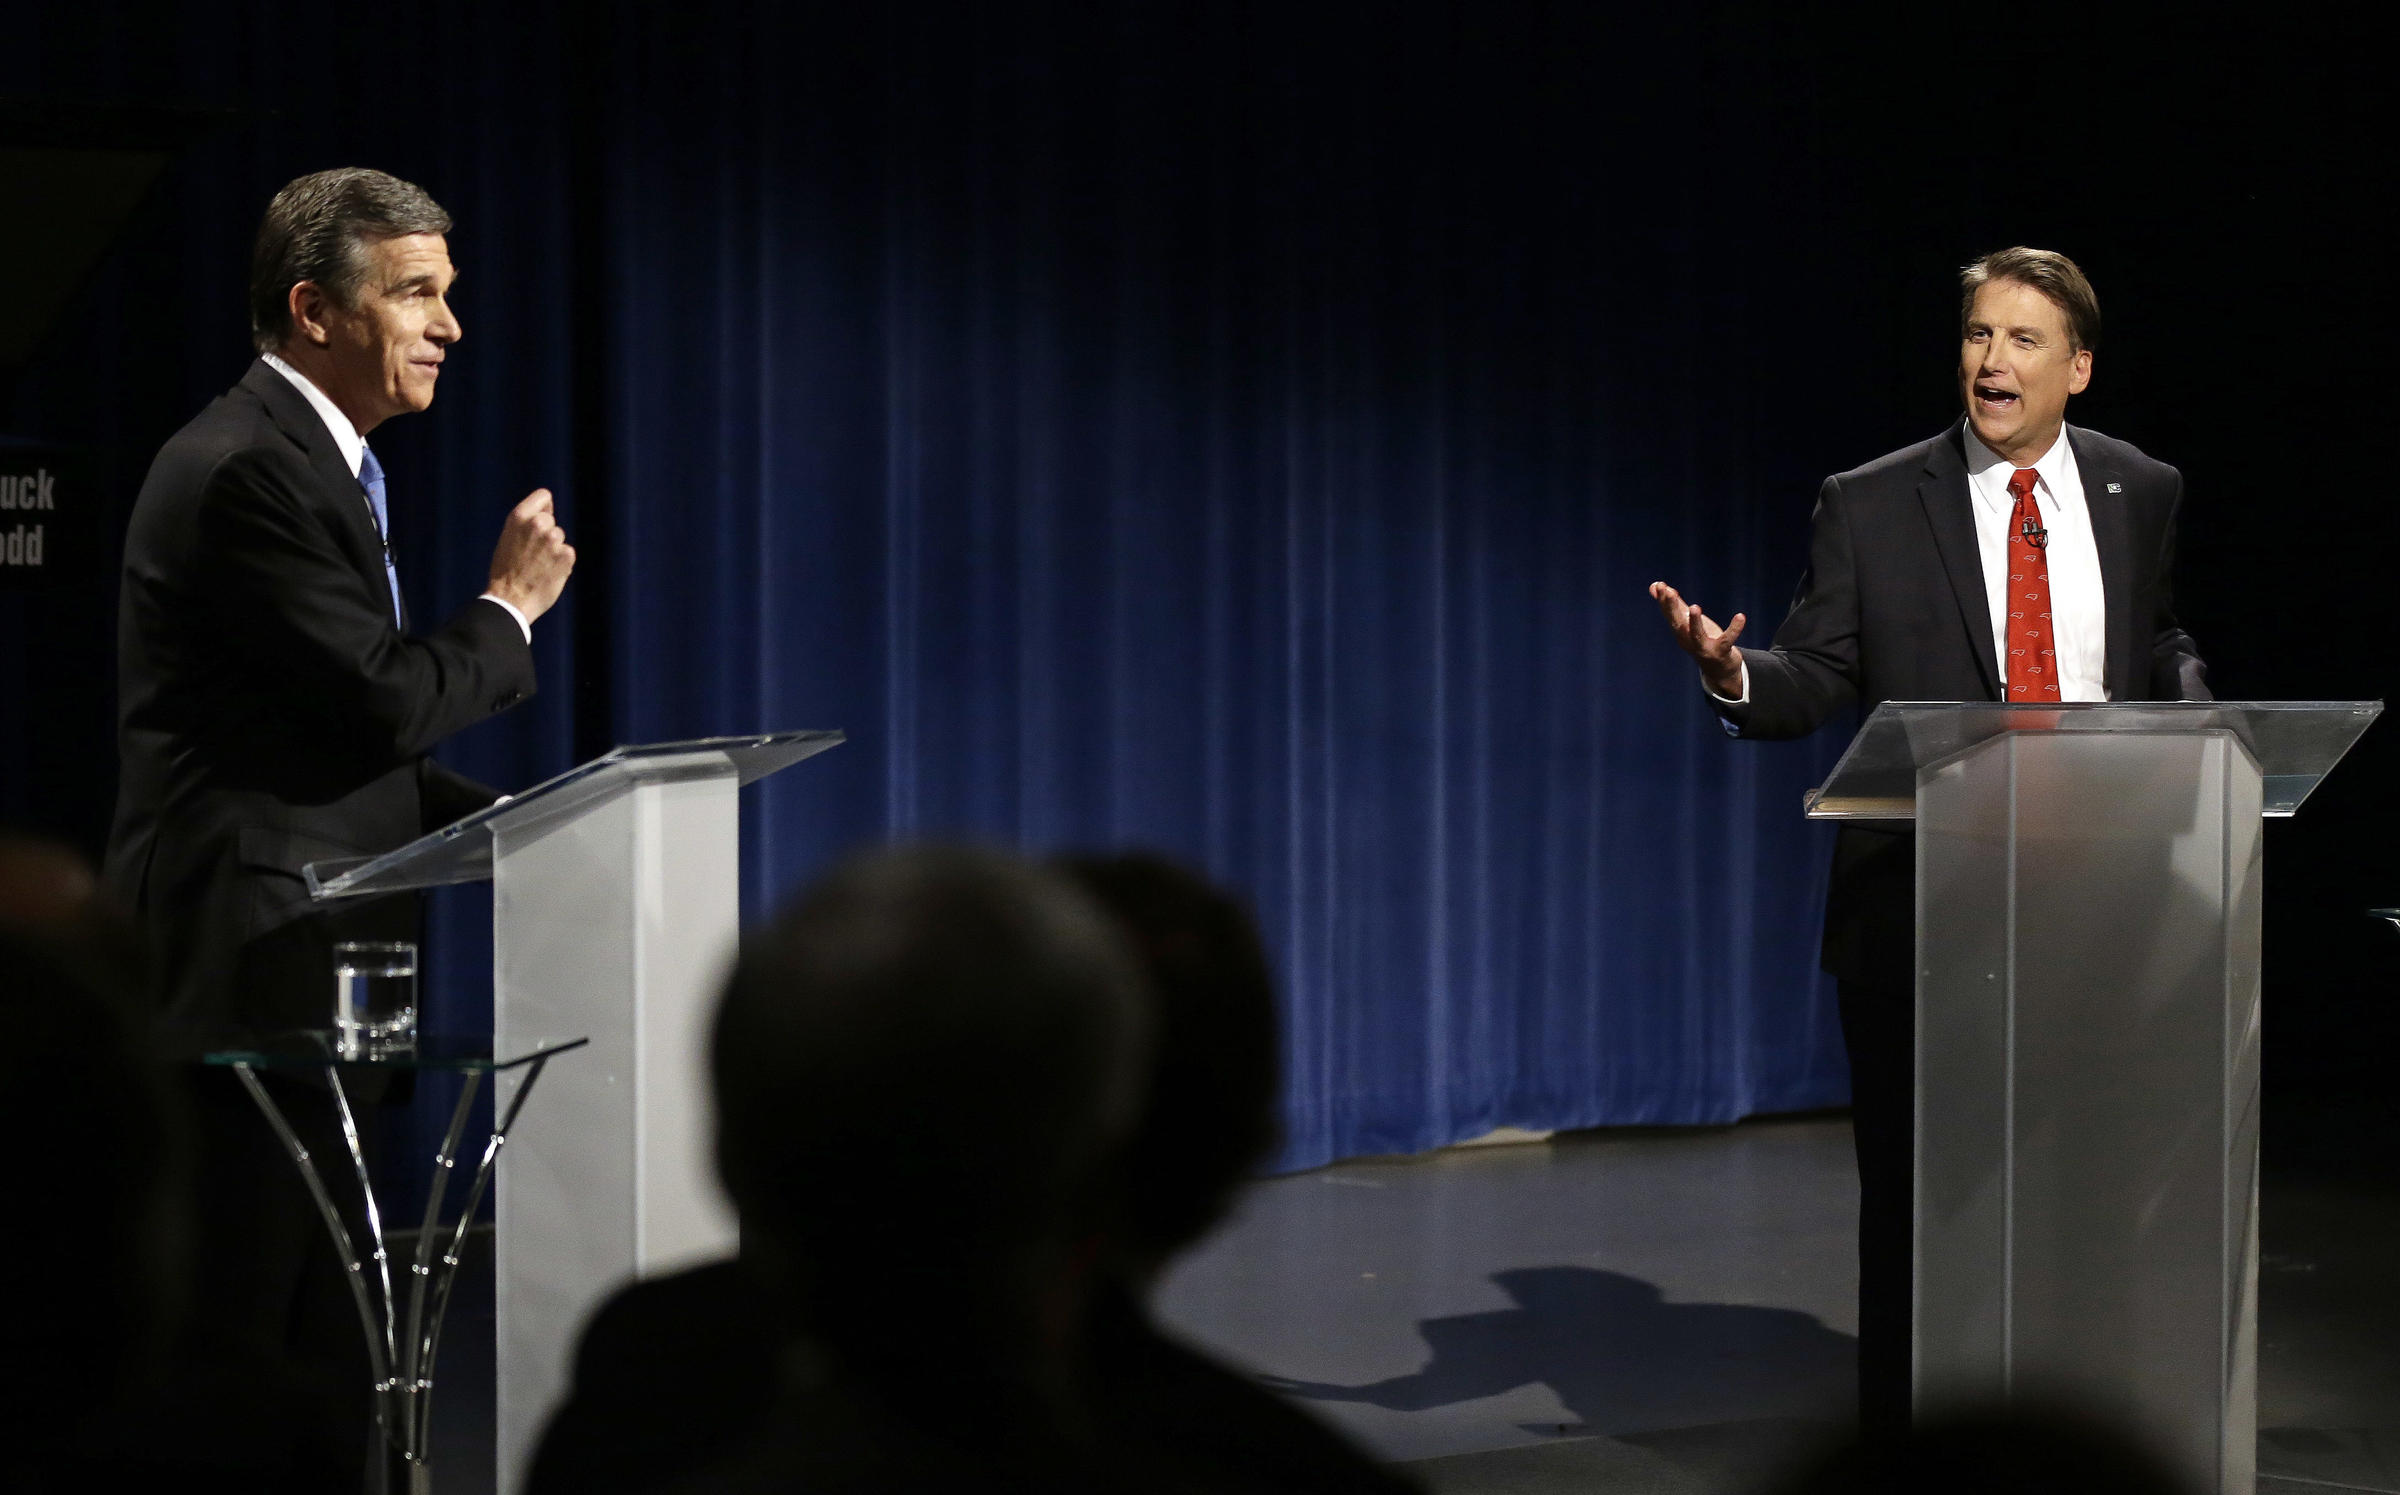 mccrory cooper exchange jabs in second gubernatorial debate bpr